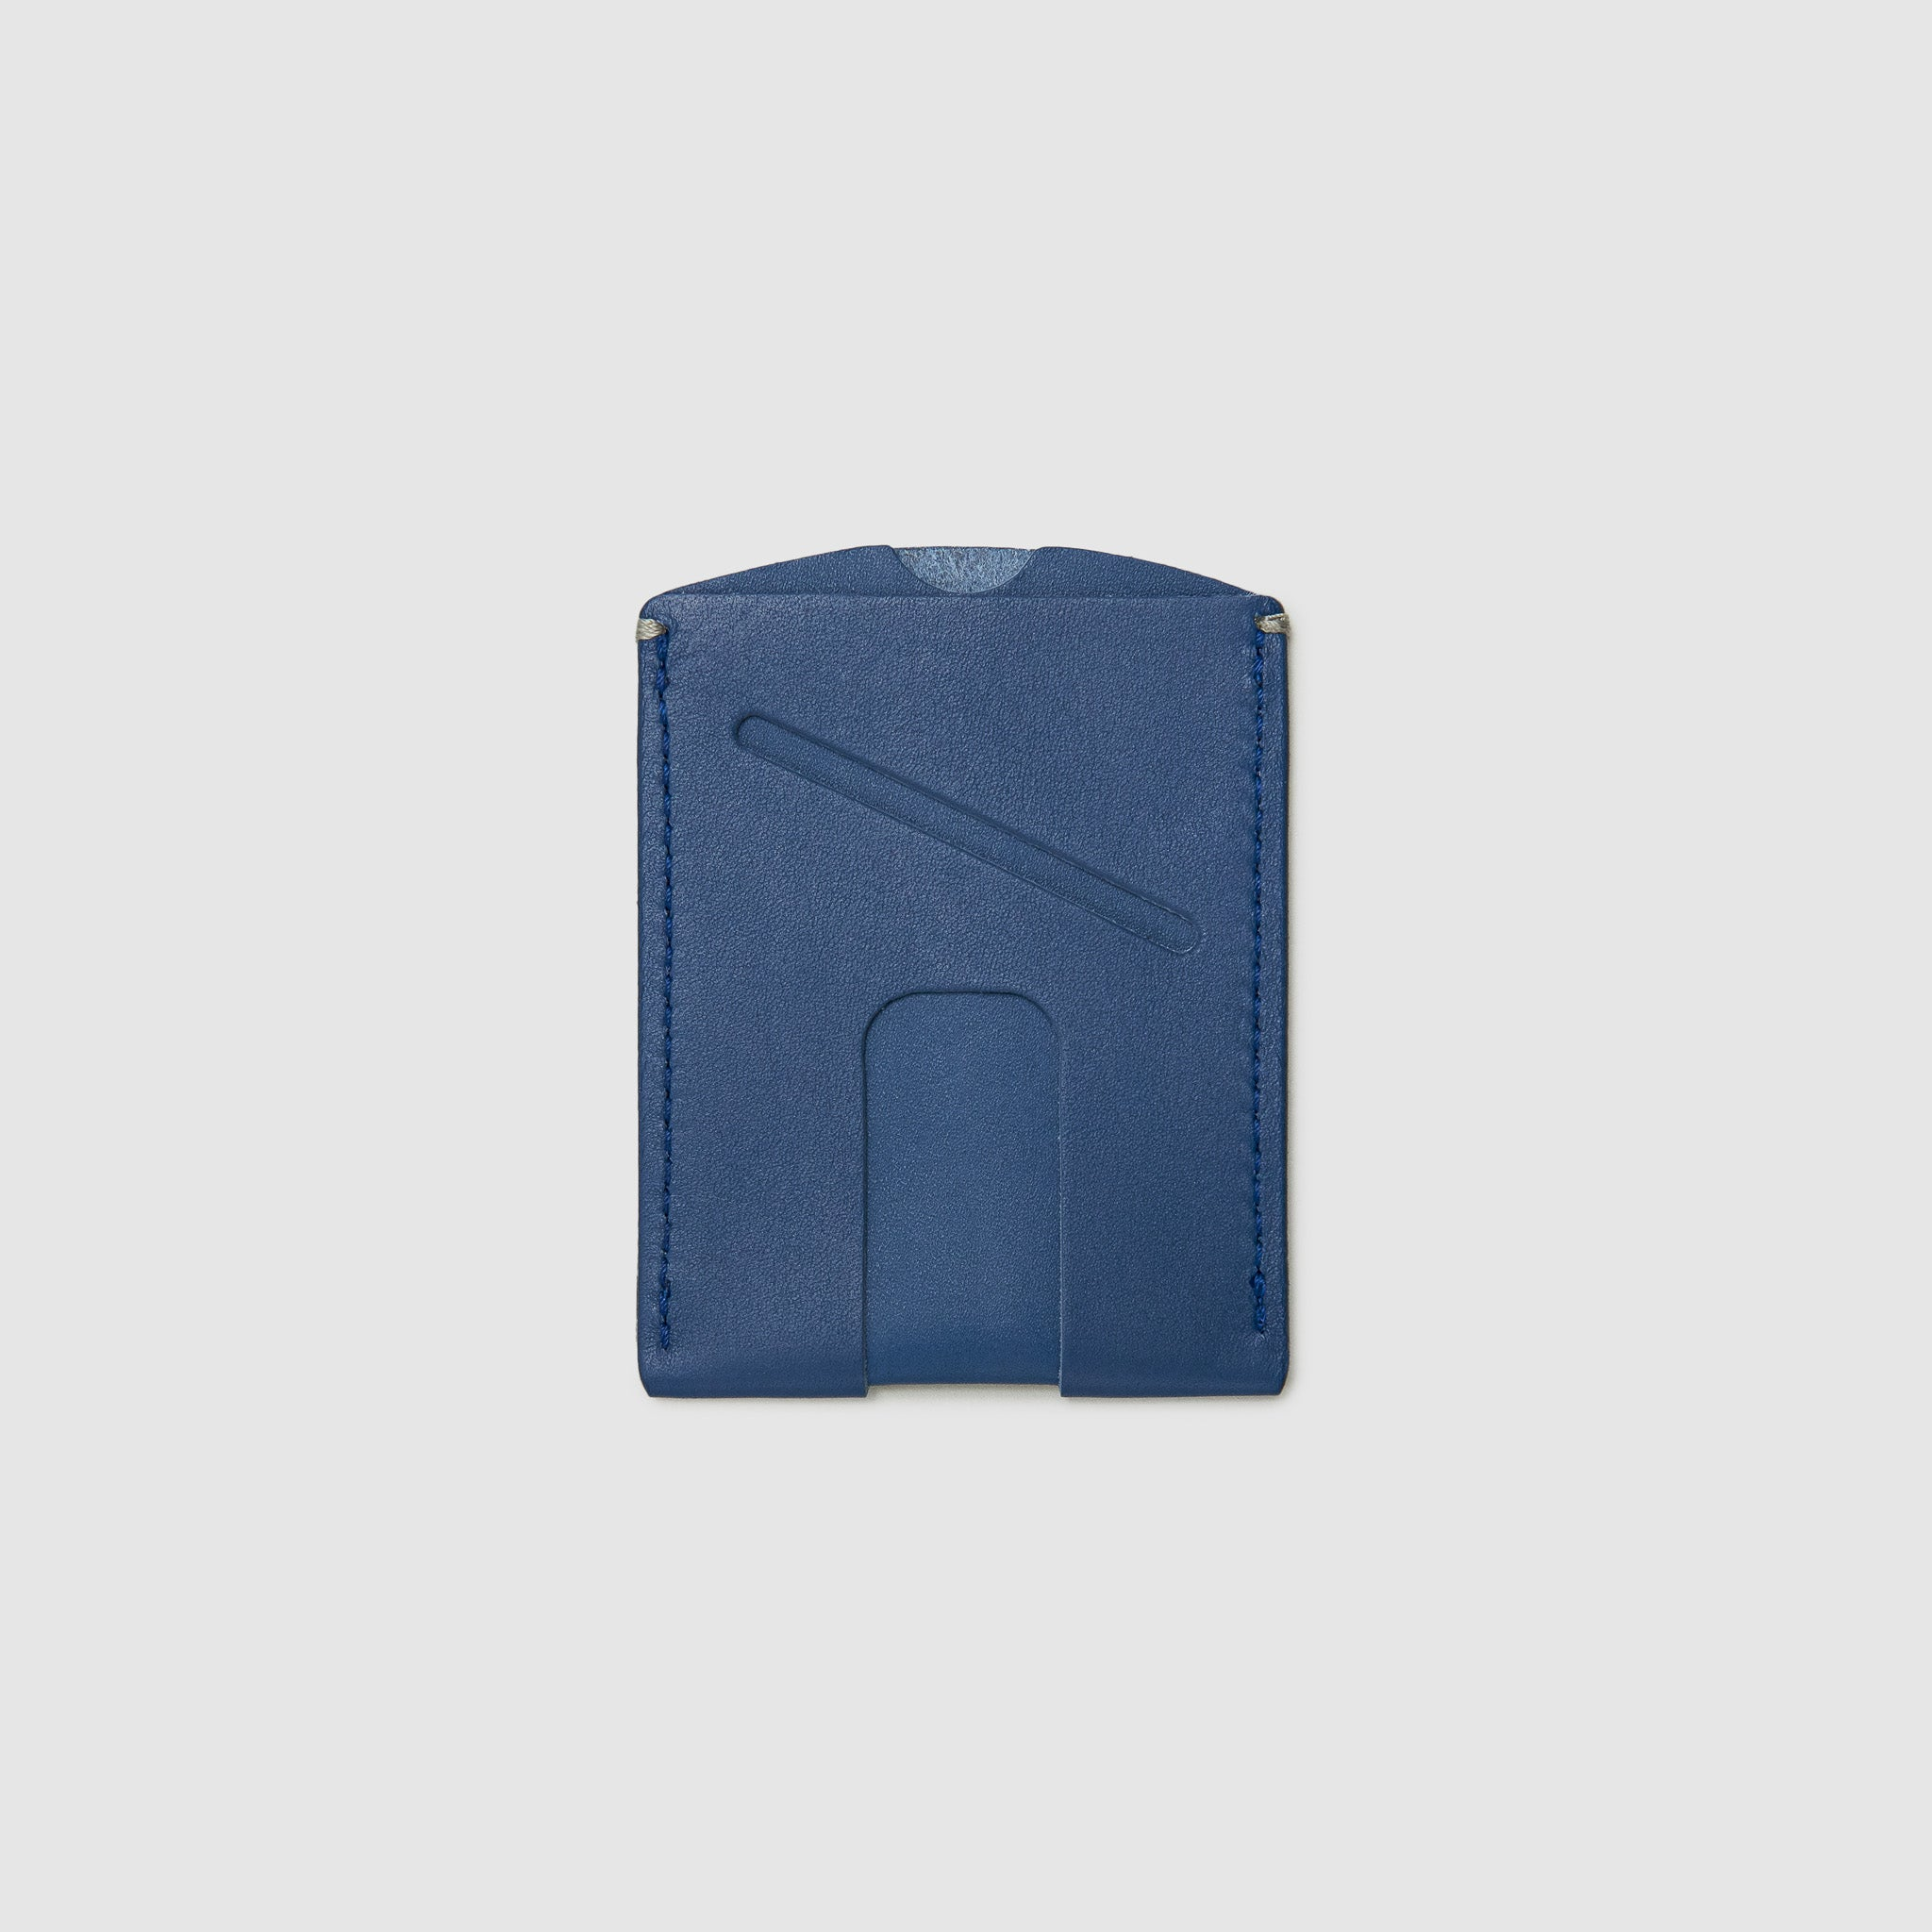 card wallet with cash slot minimal ANSON CALDER French Calfskin _blackPASSPORT WALLET WALLET ANSON CALDER french calfskin leather _cobalt